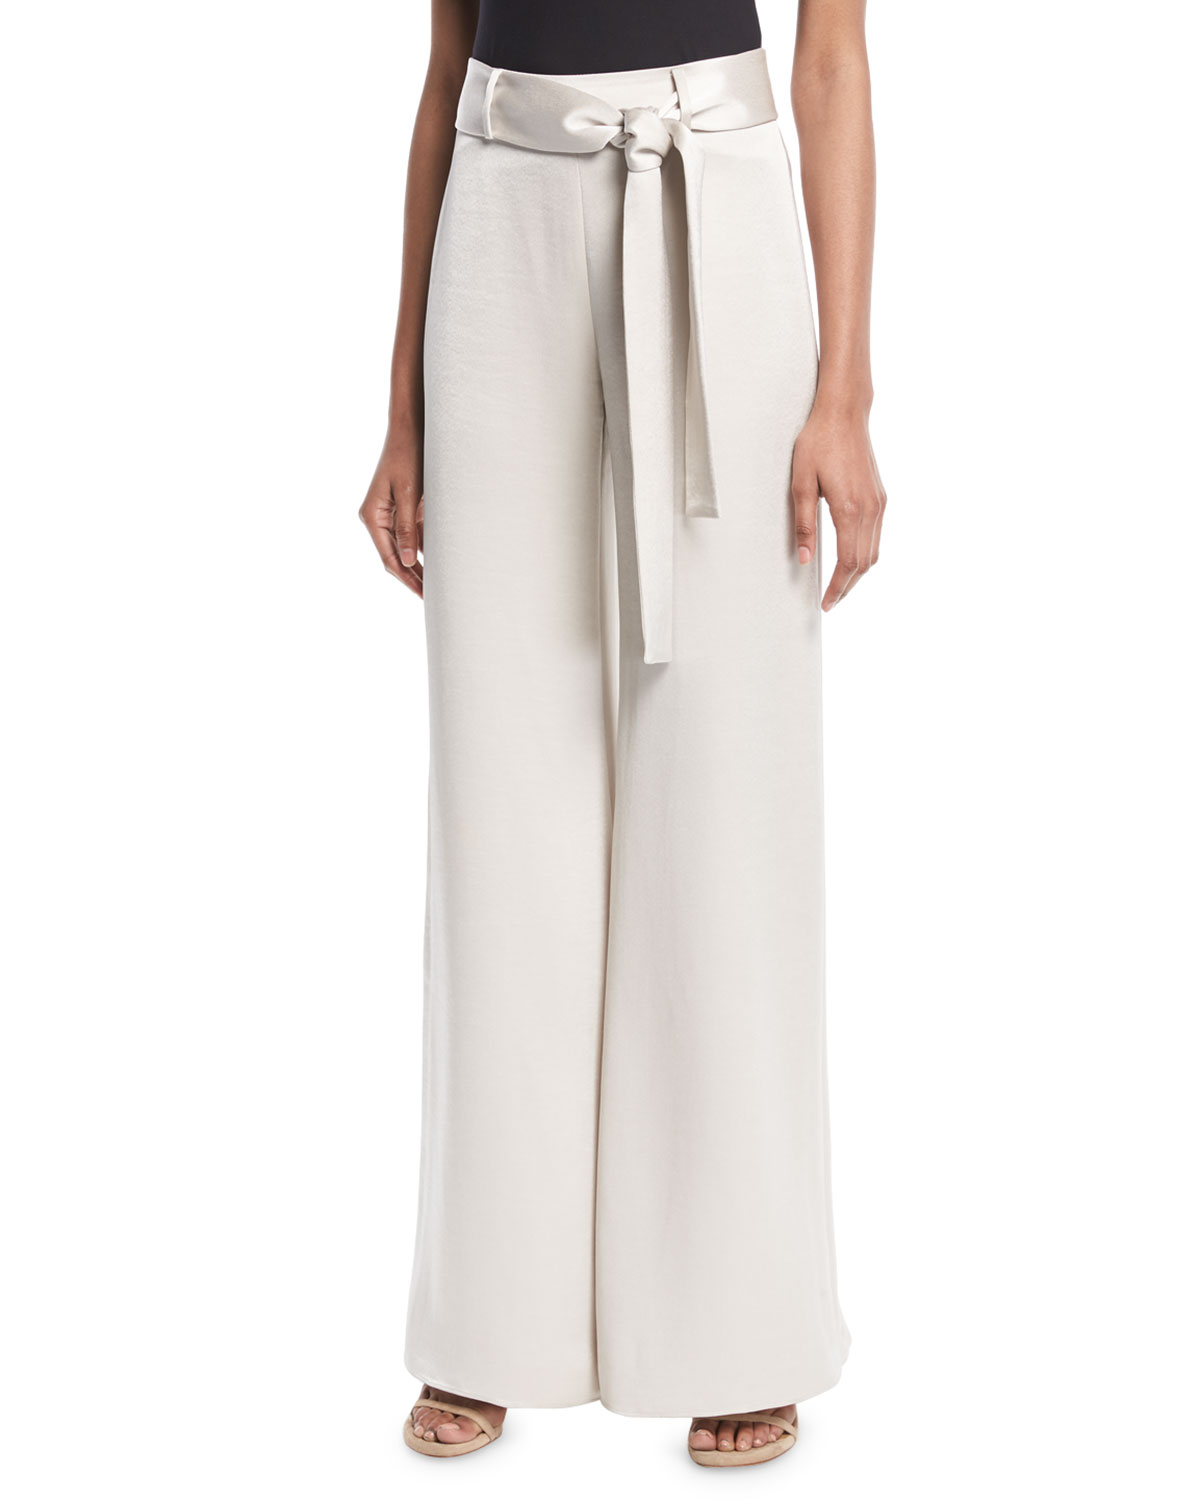 Nerissa Belted Wide-Leg Pants